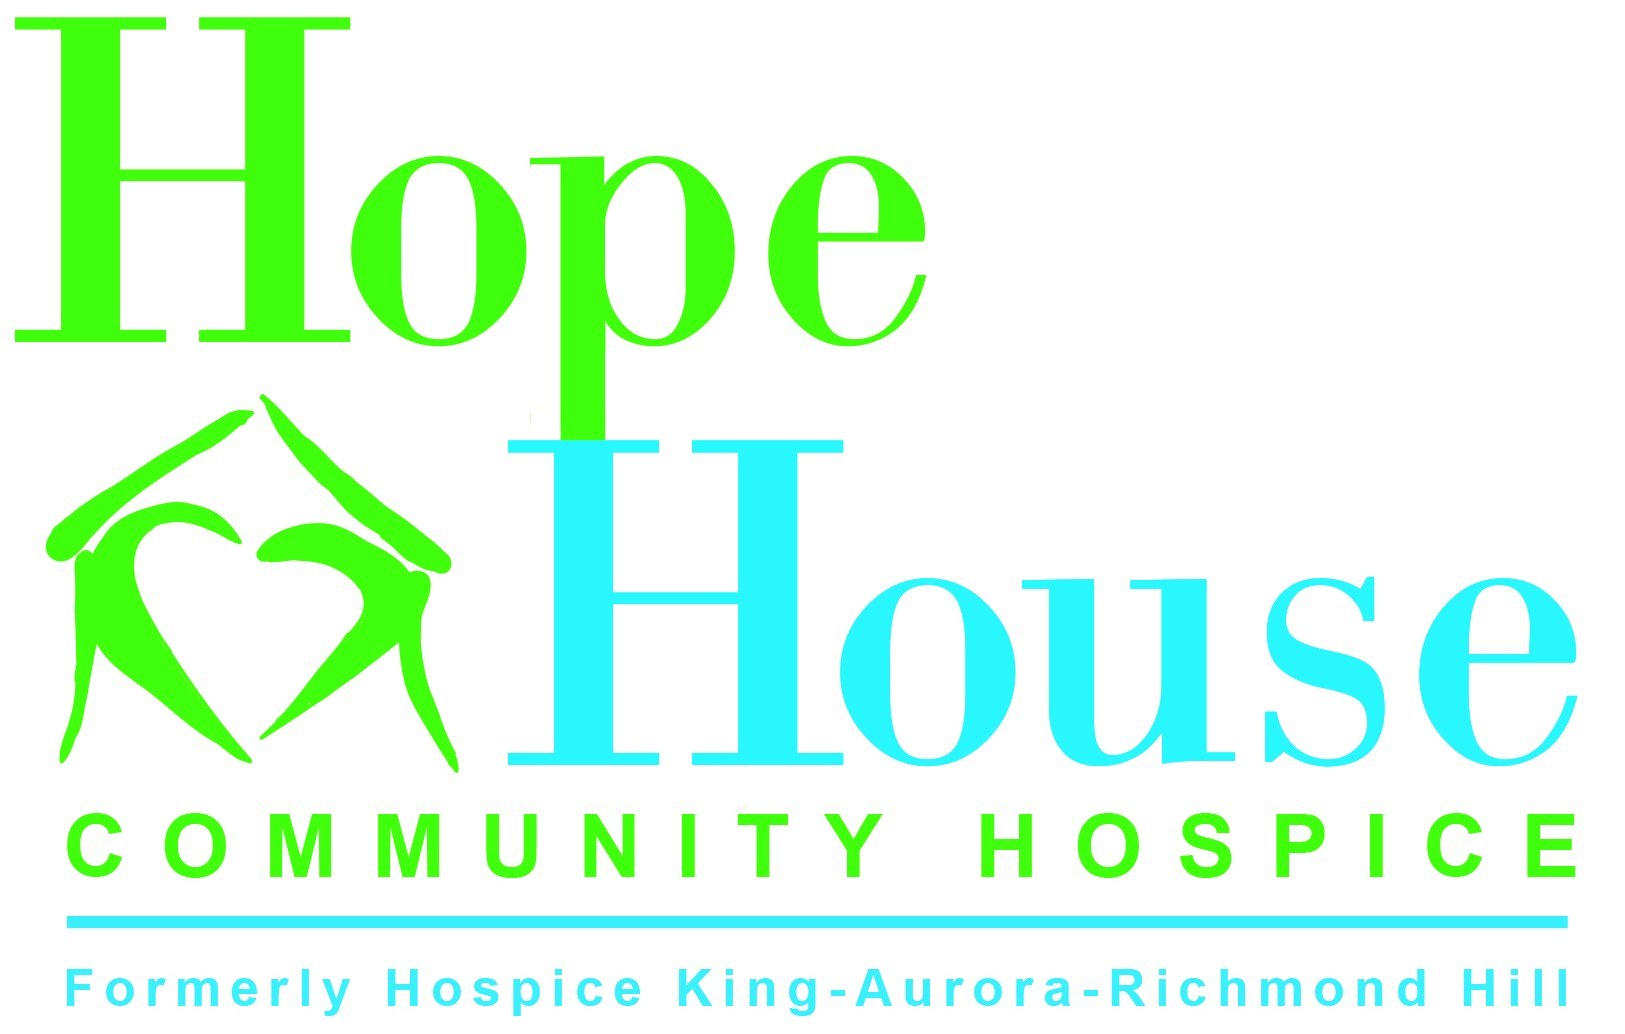 Hope House Community Hospice